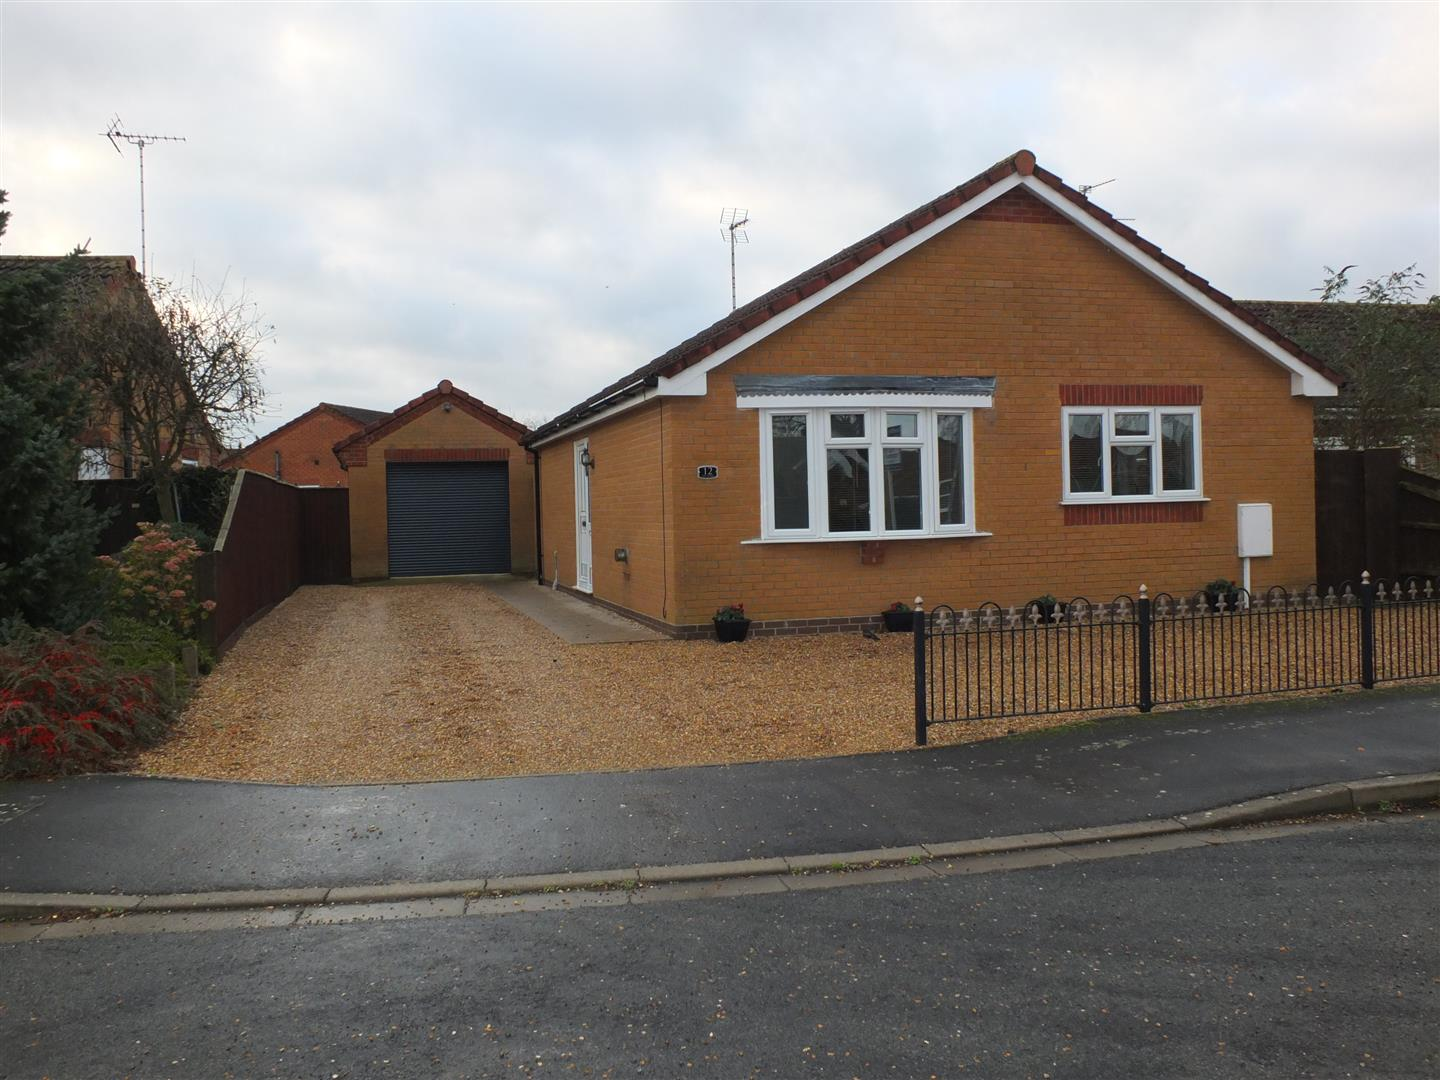 2 bed detached bungalow to rent in Long Sutton Spalding, PE12 9FA  - Property Image 1